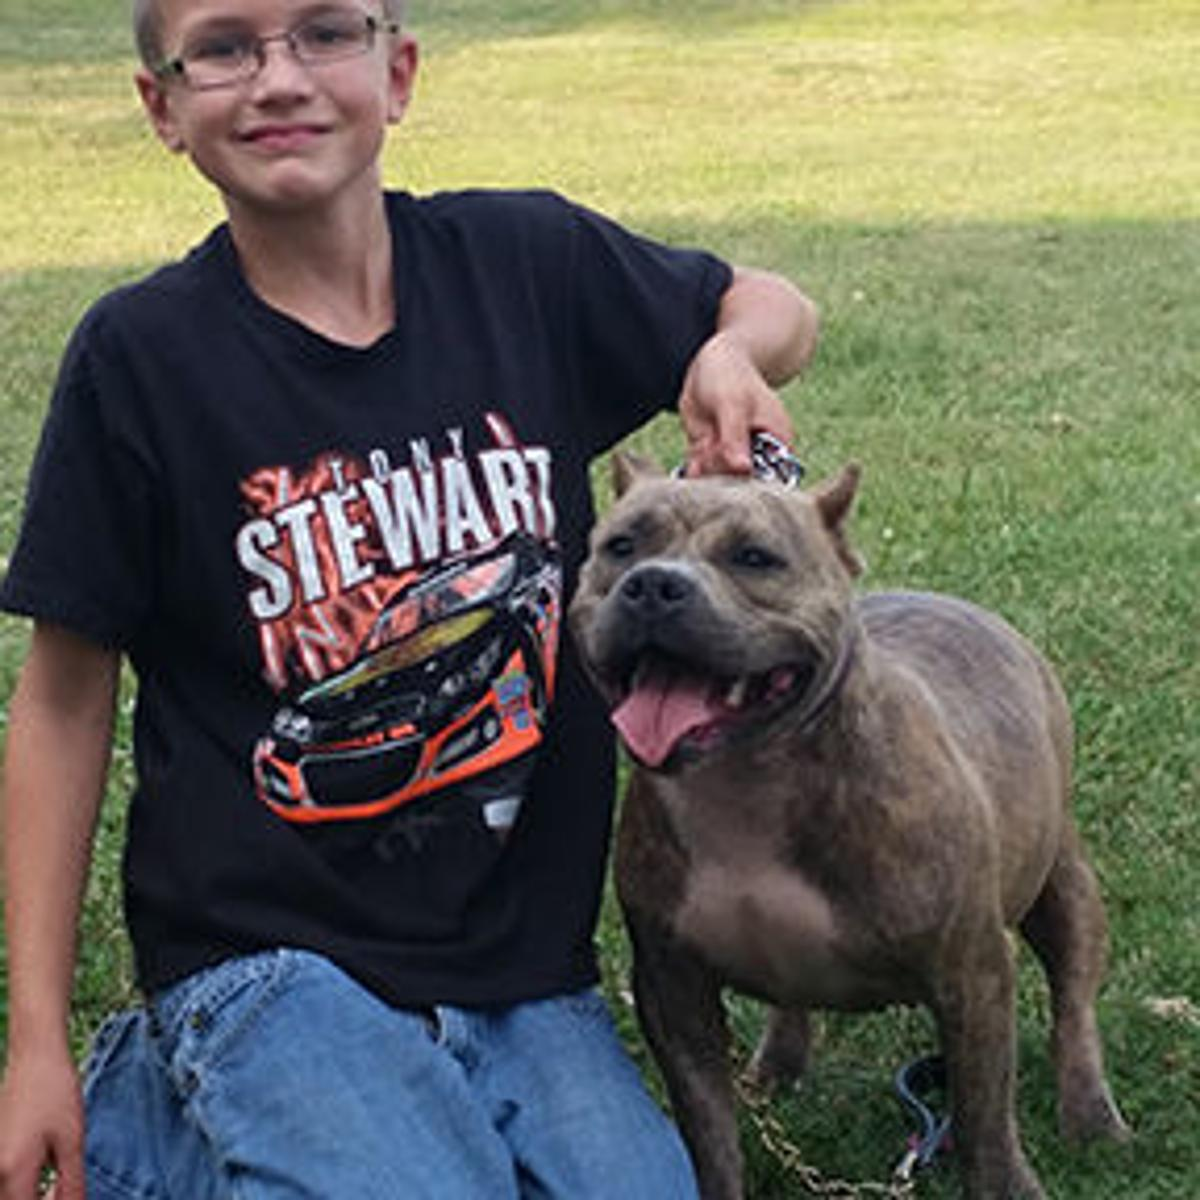 Cunningham student invited to show bully dogs at national